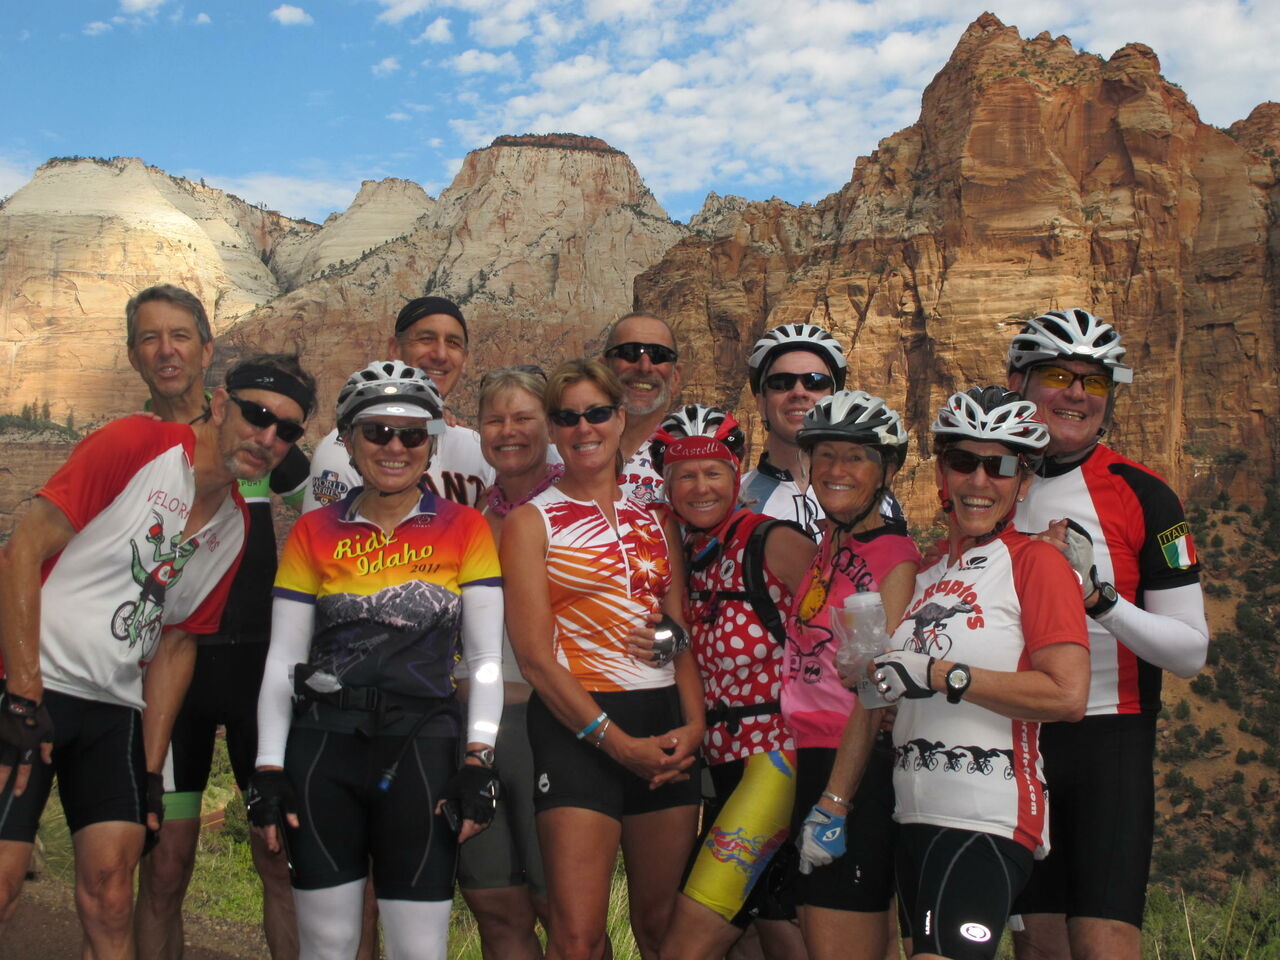 Cycling with friends in Zion, Utah